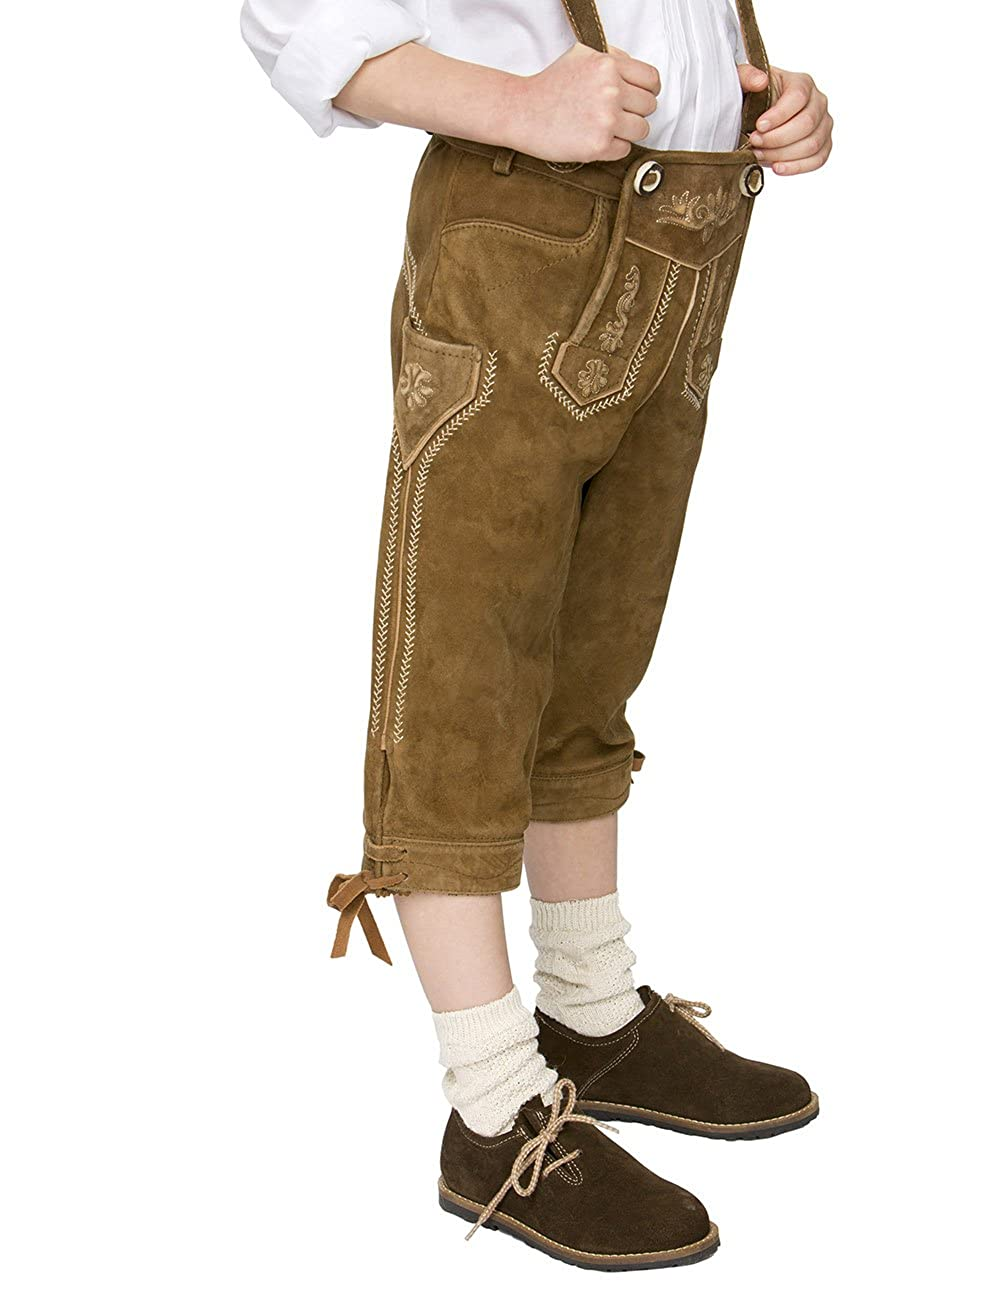 Stockerpoint Chlidren Leather Trousers Knee Length P-300 Lightbrown